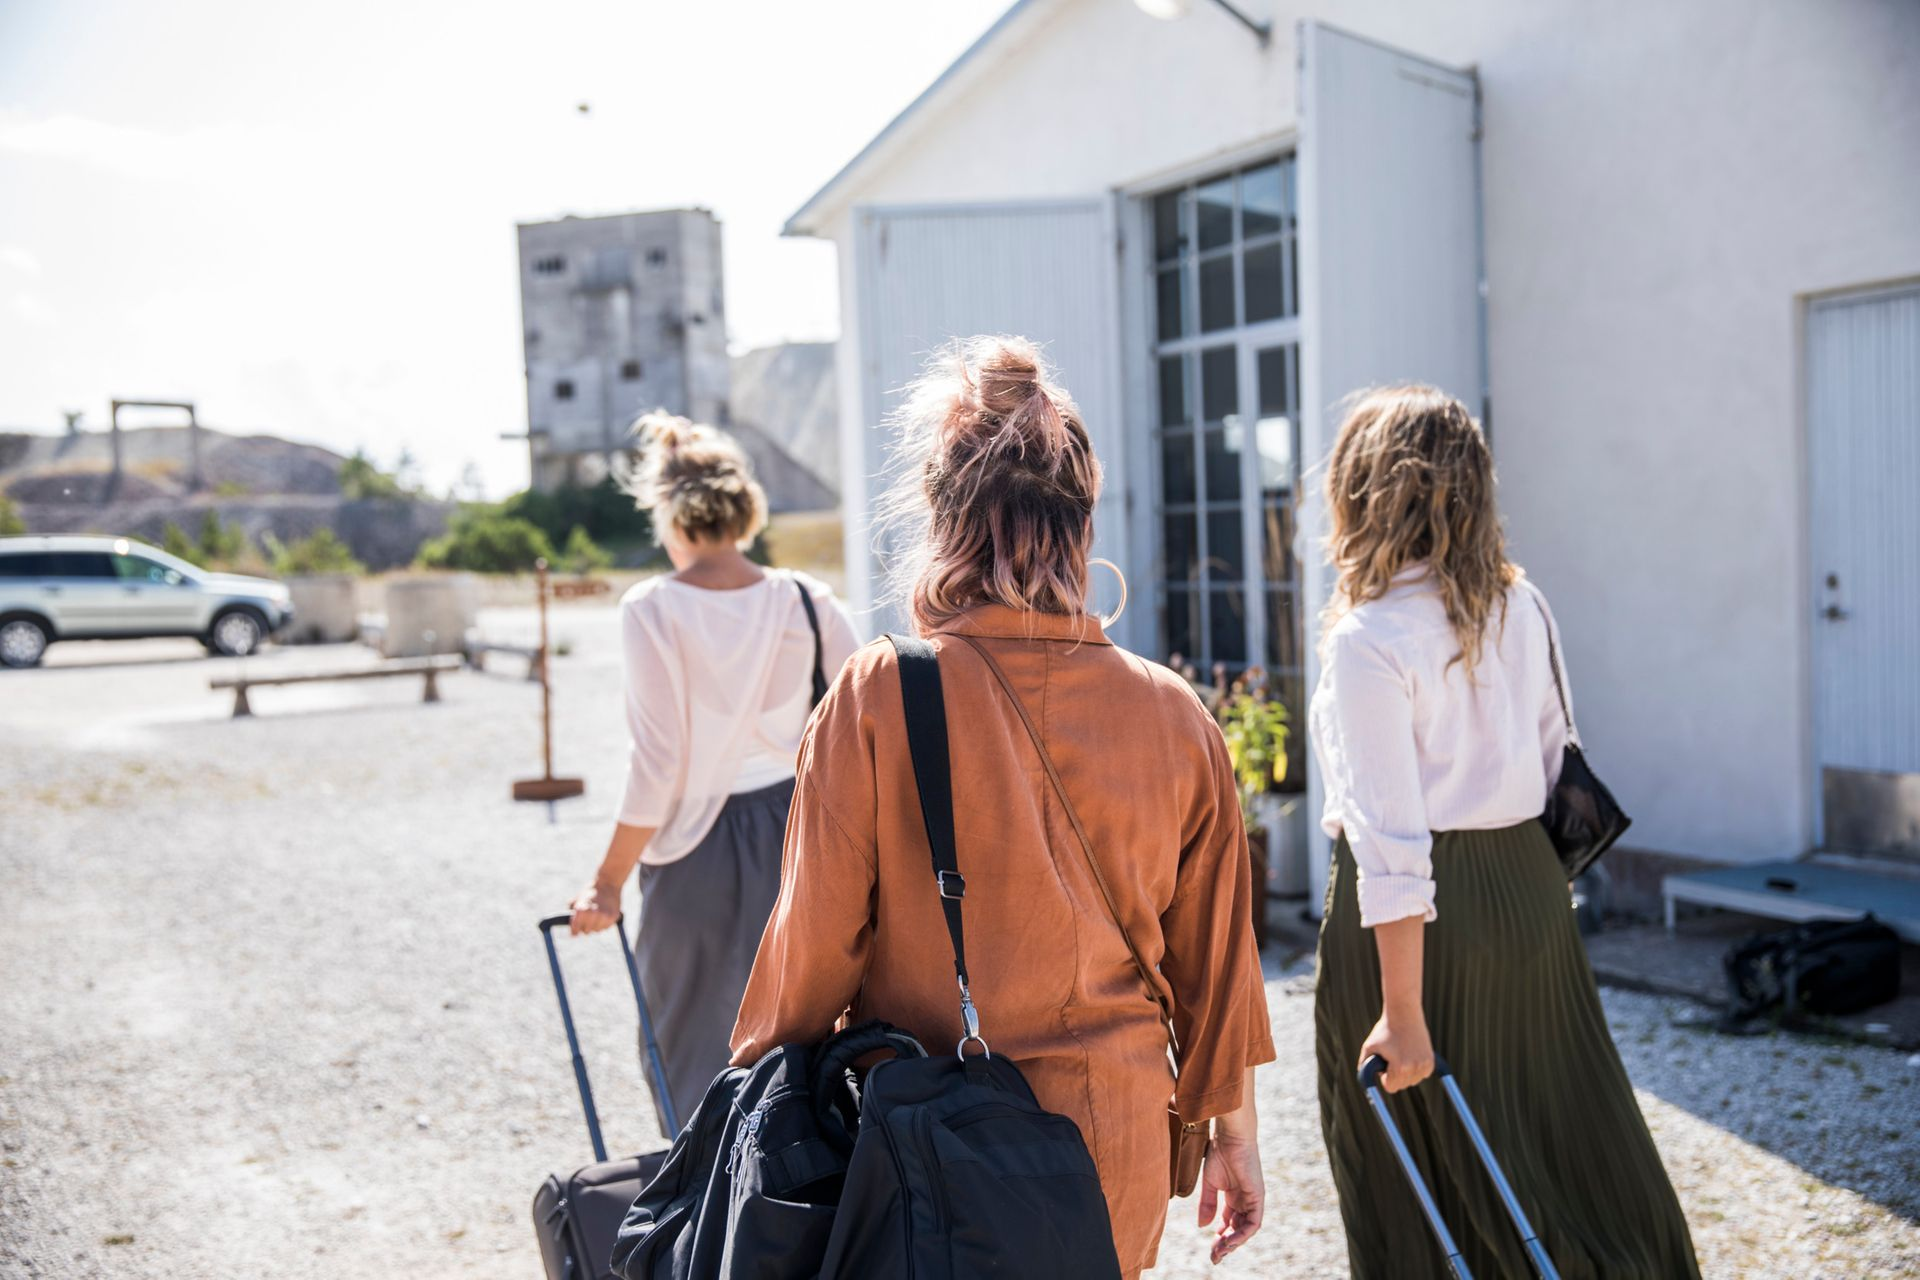 Three women with suitcases walk on a parking lot outside a hotel.